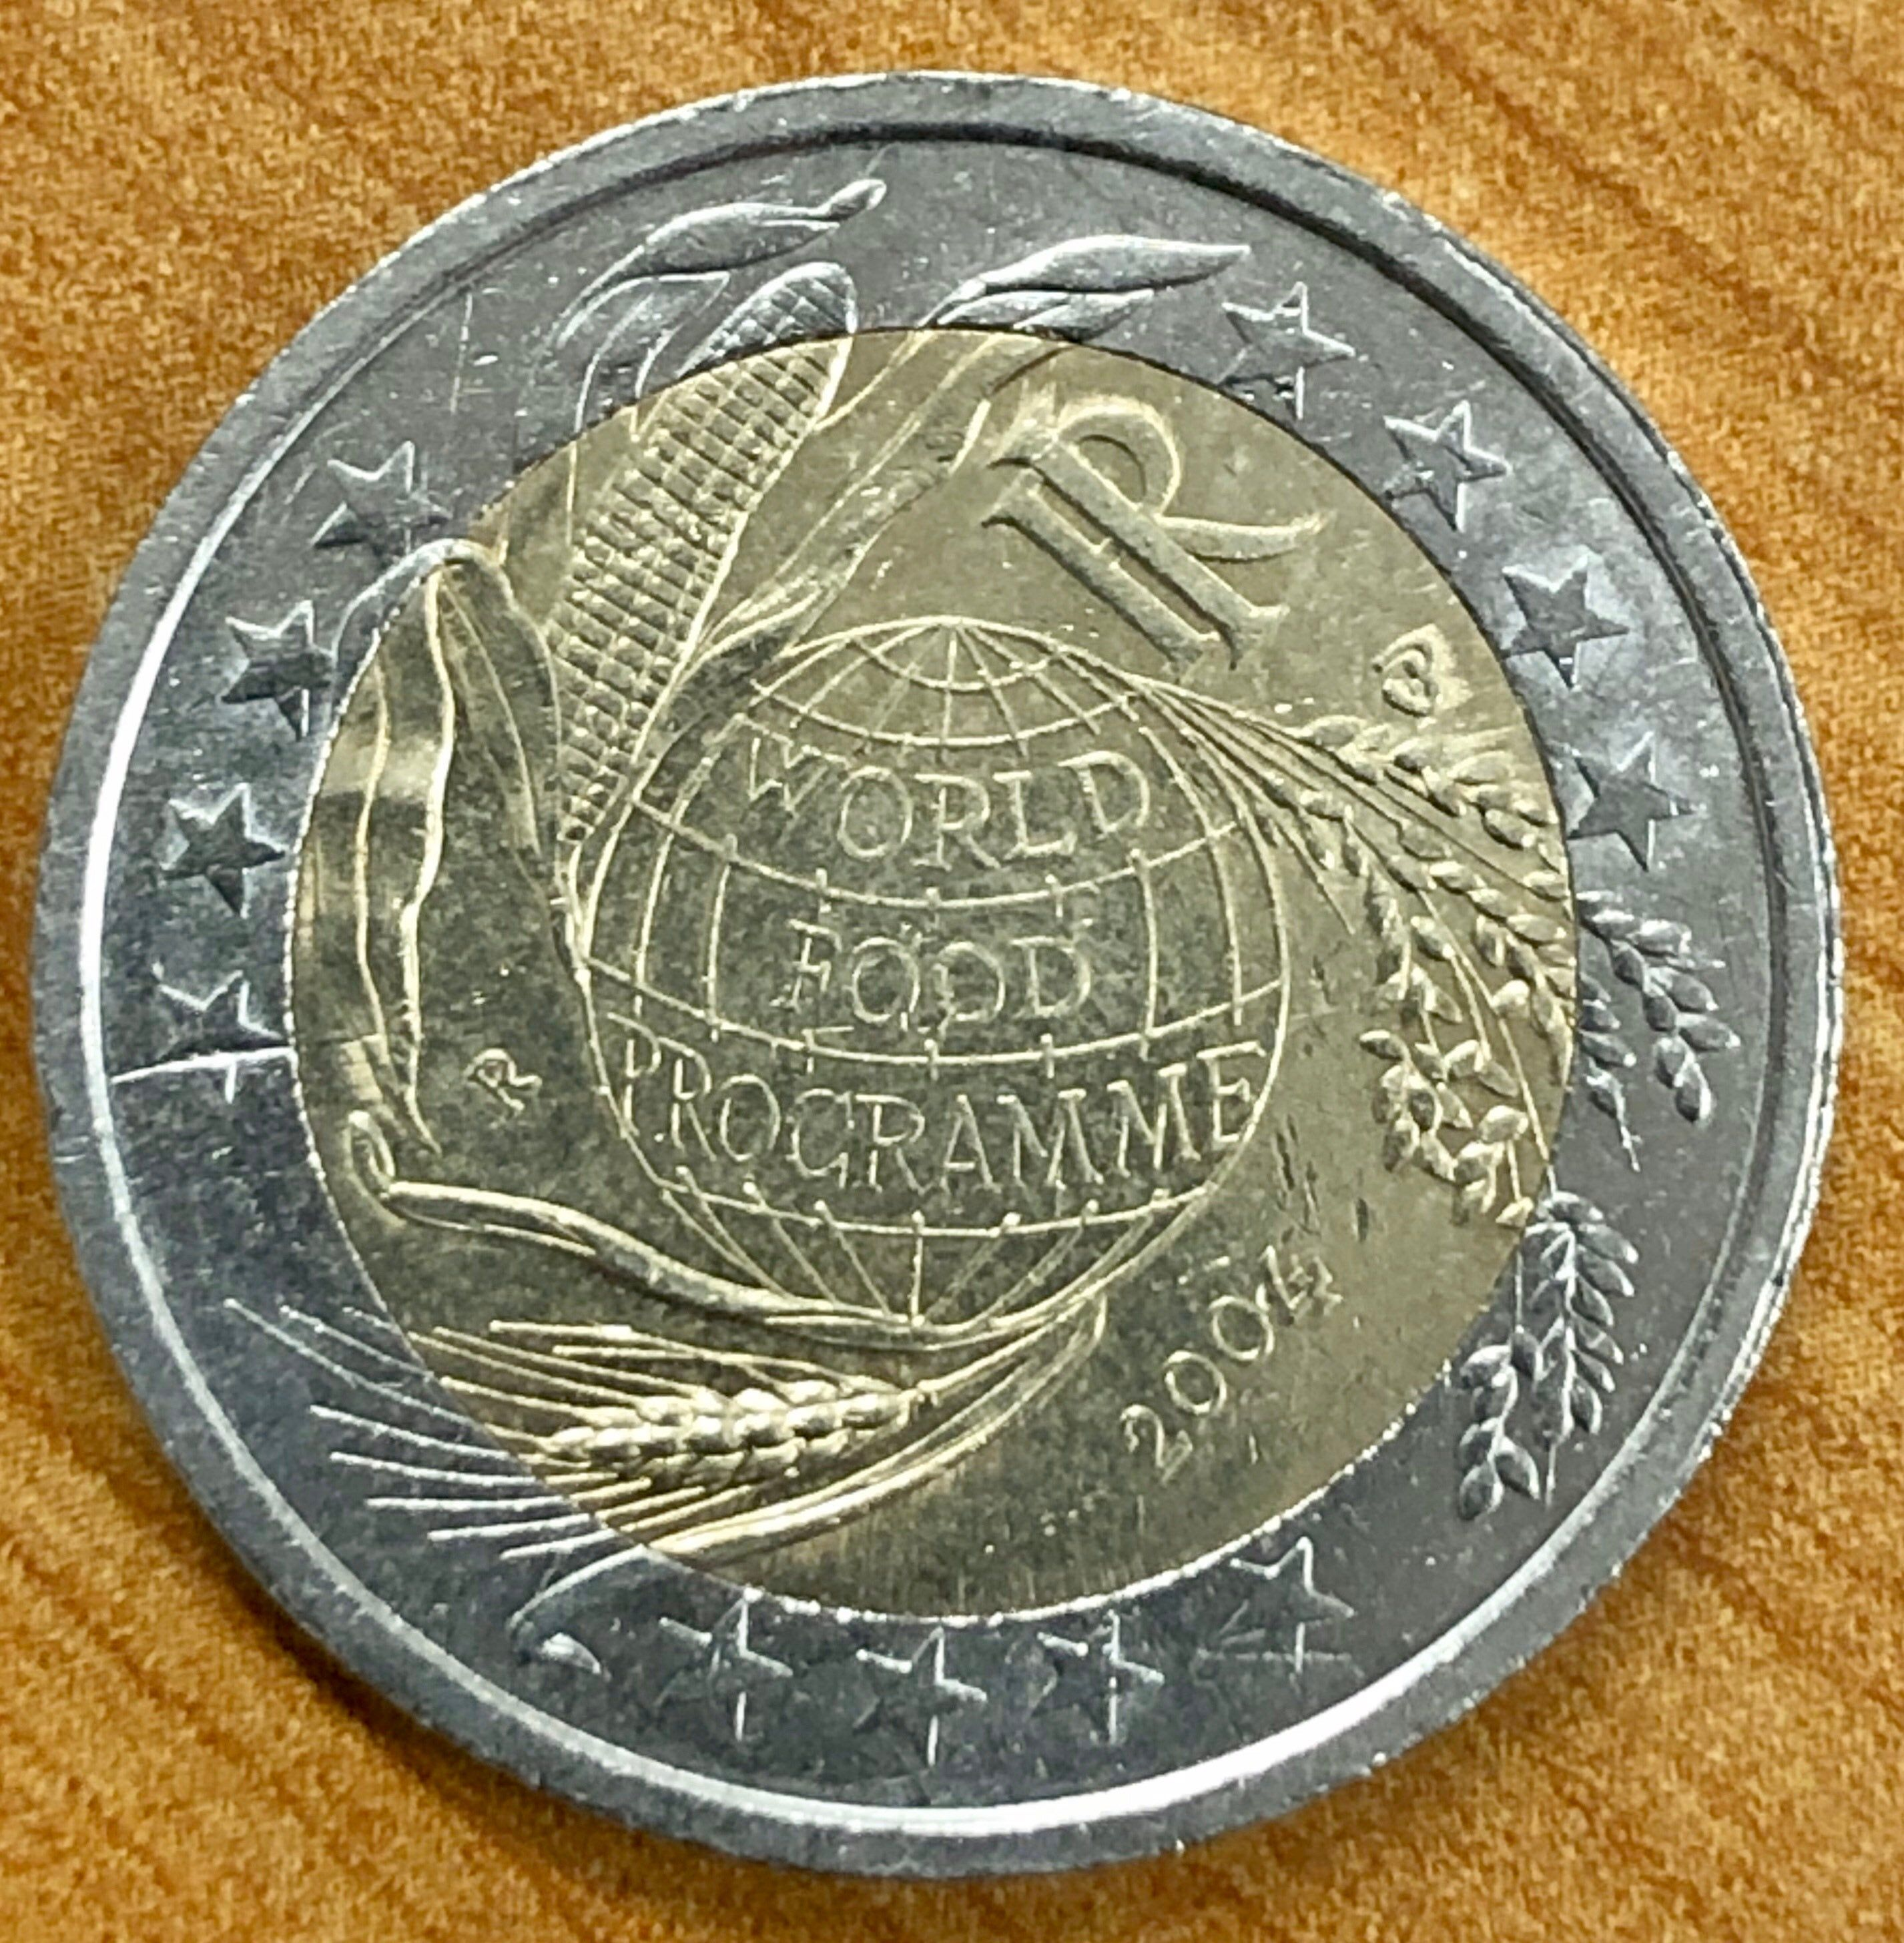 Coin 2 Euro Italy 2004 World Food Programme Commemorative In 2020 Coins World Food Programme Euro